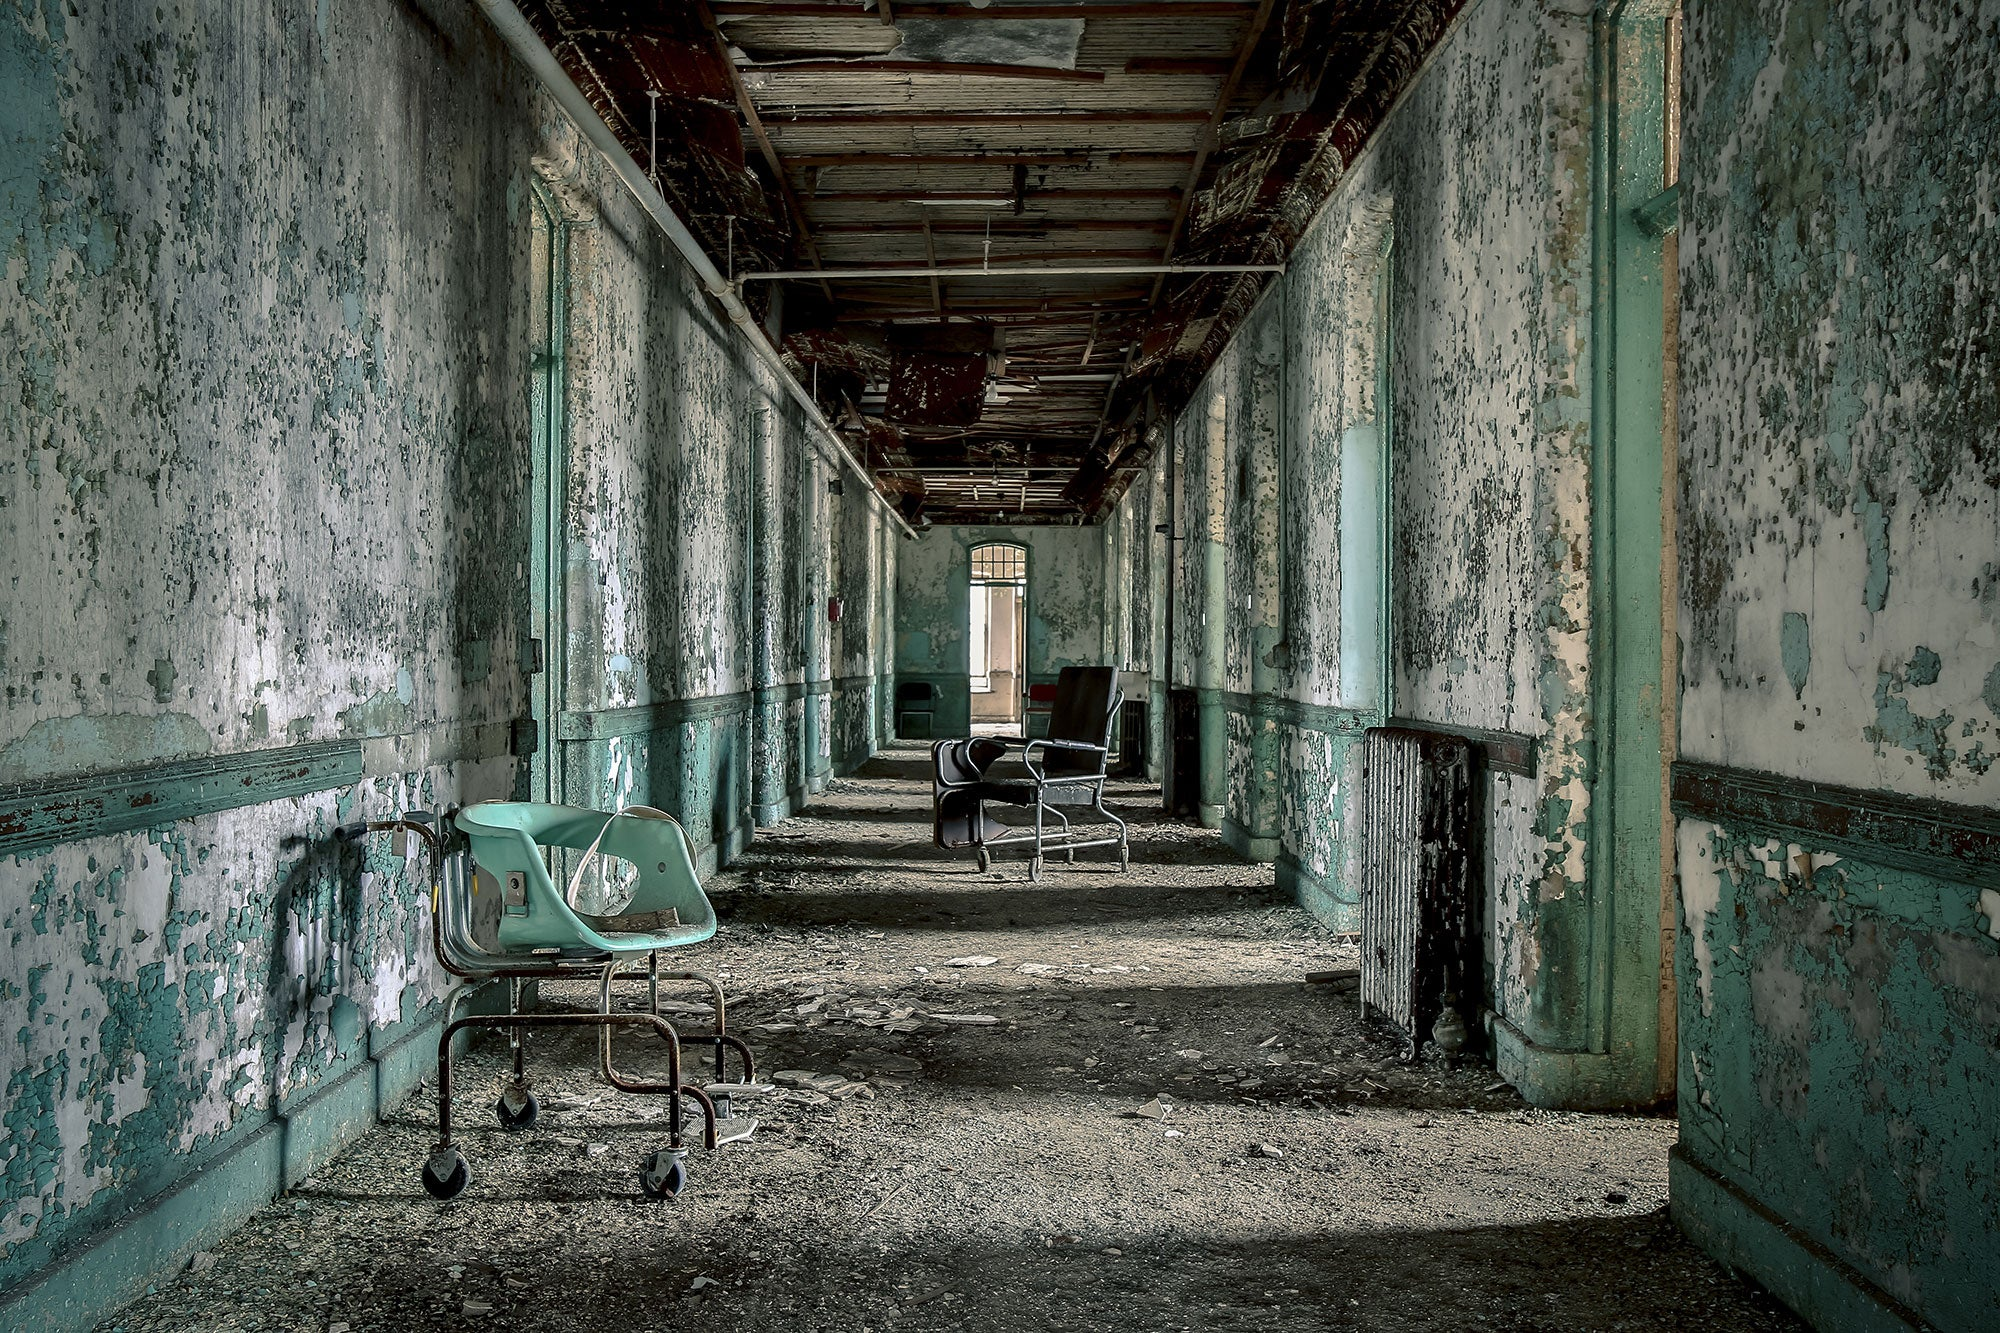 The abandoned asylums of North America